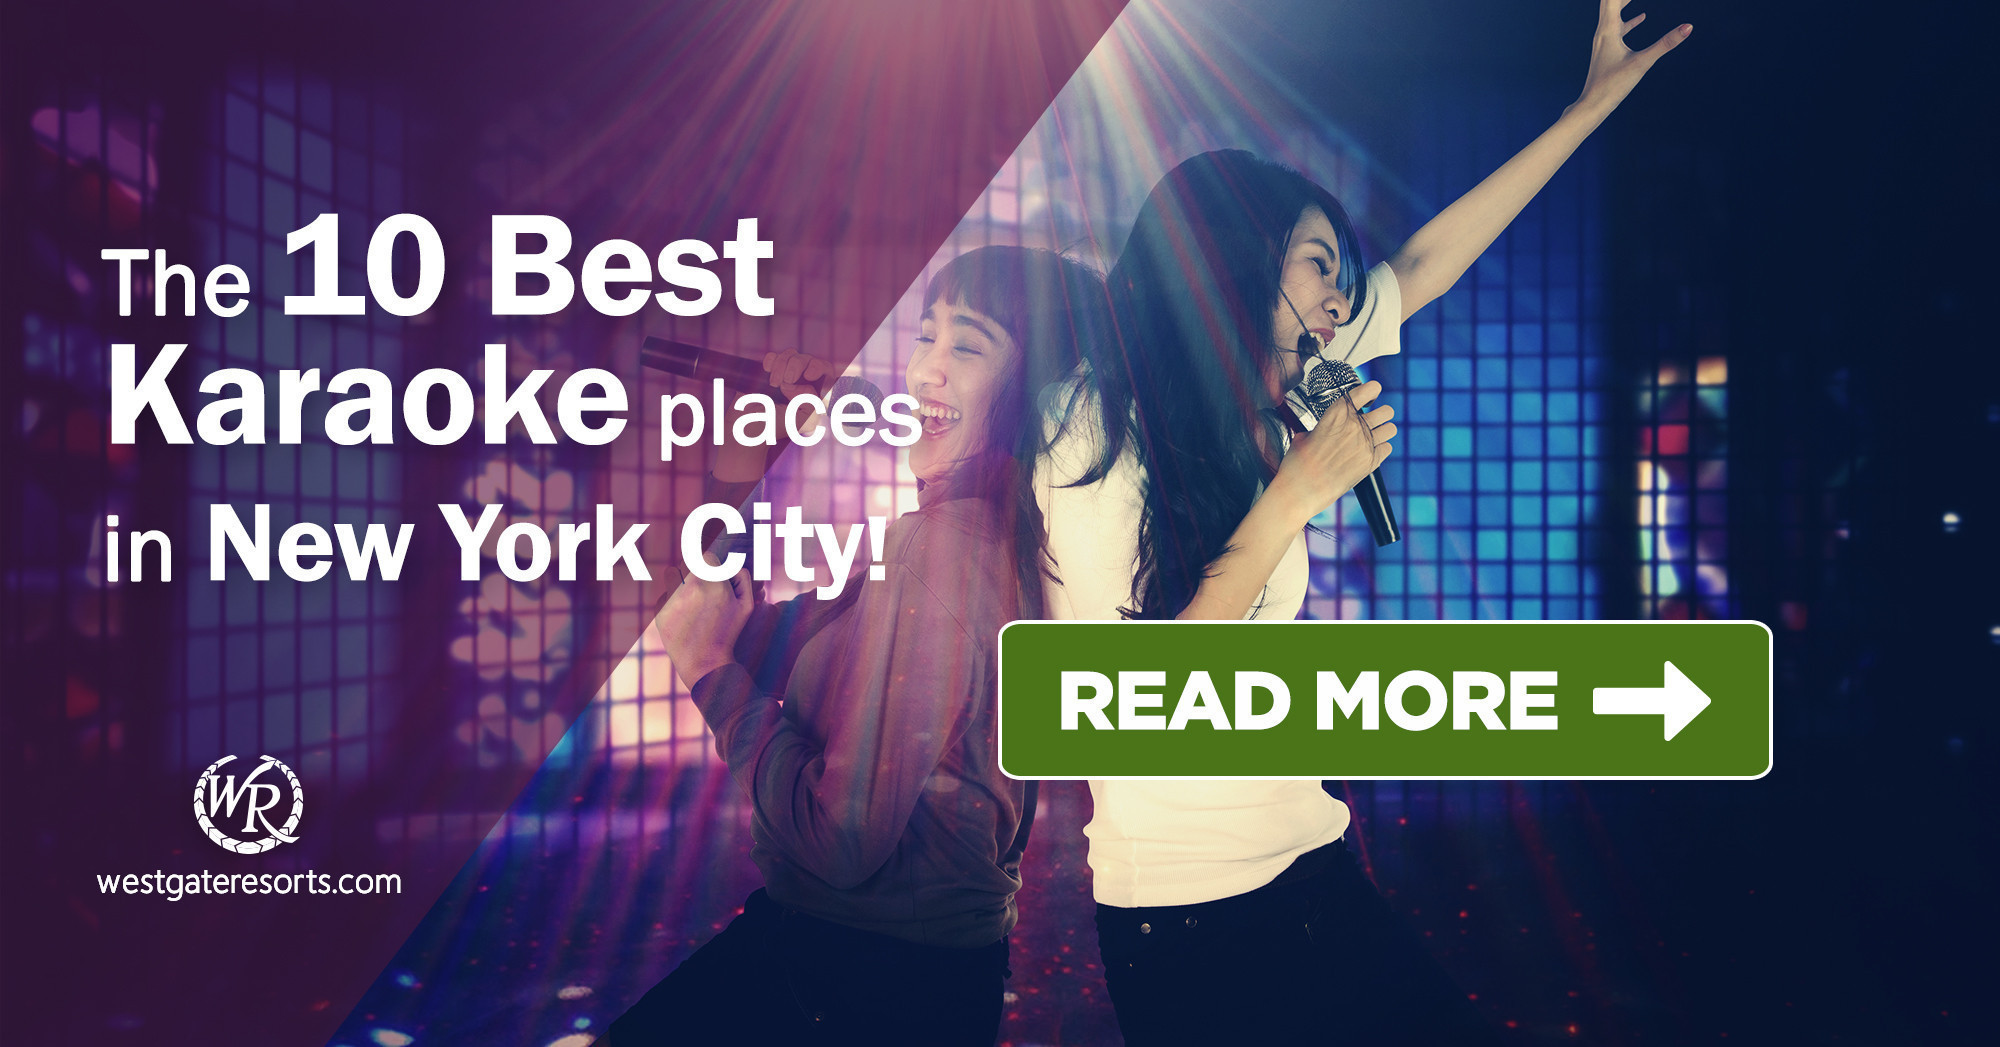 The 10 Best Karaoke Places in New York City | Manhattan Karaoke Guide | Westgate New York City